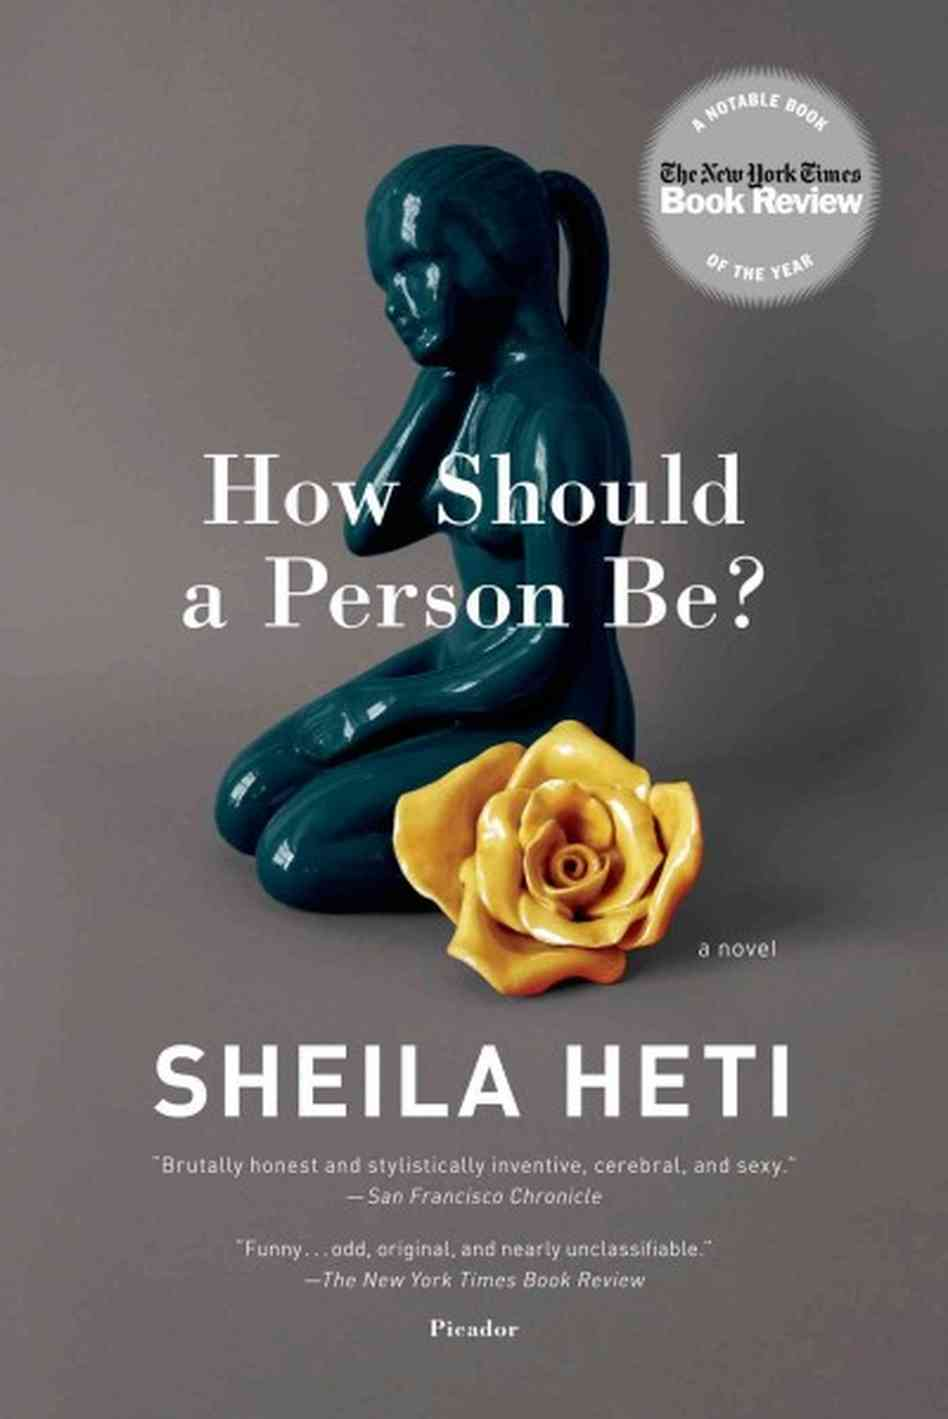 How Should a Person Be? by Sheila Heti.jpg